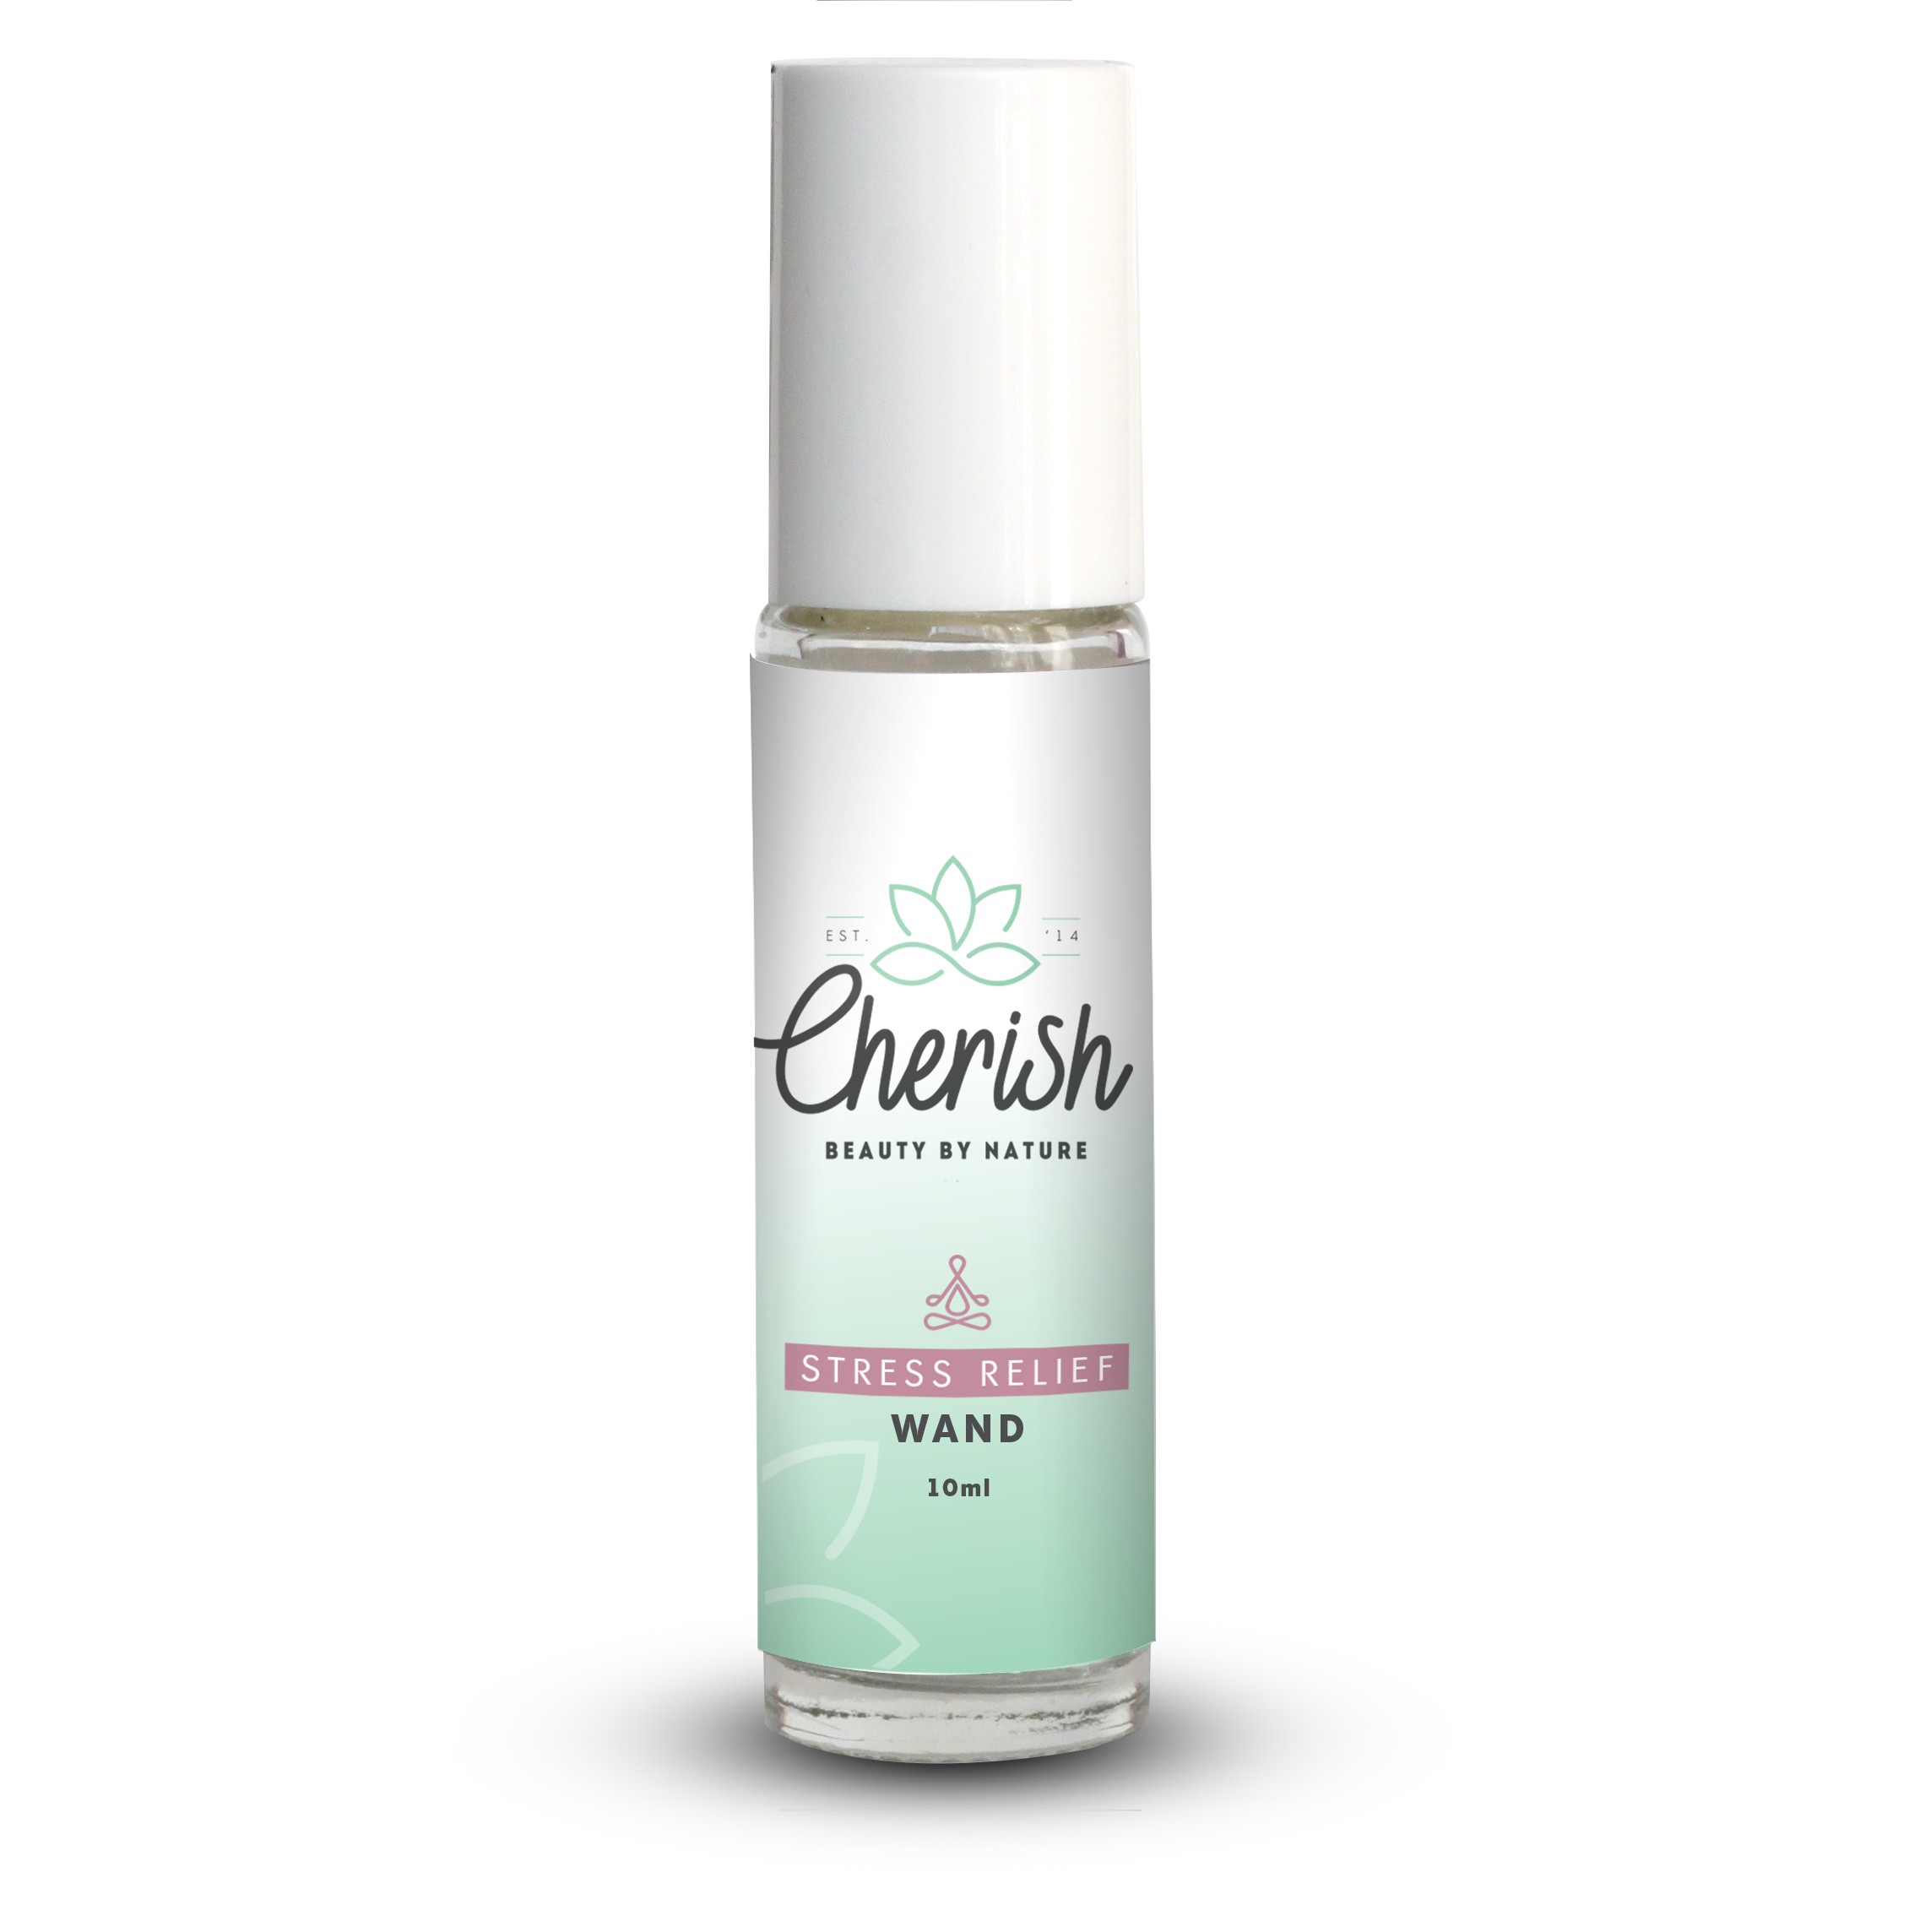 Cherish beauty stress relief pre-diluted aromatherapy roller ball wand 10ml glass